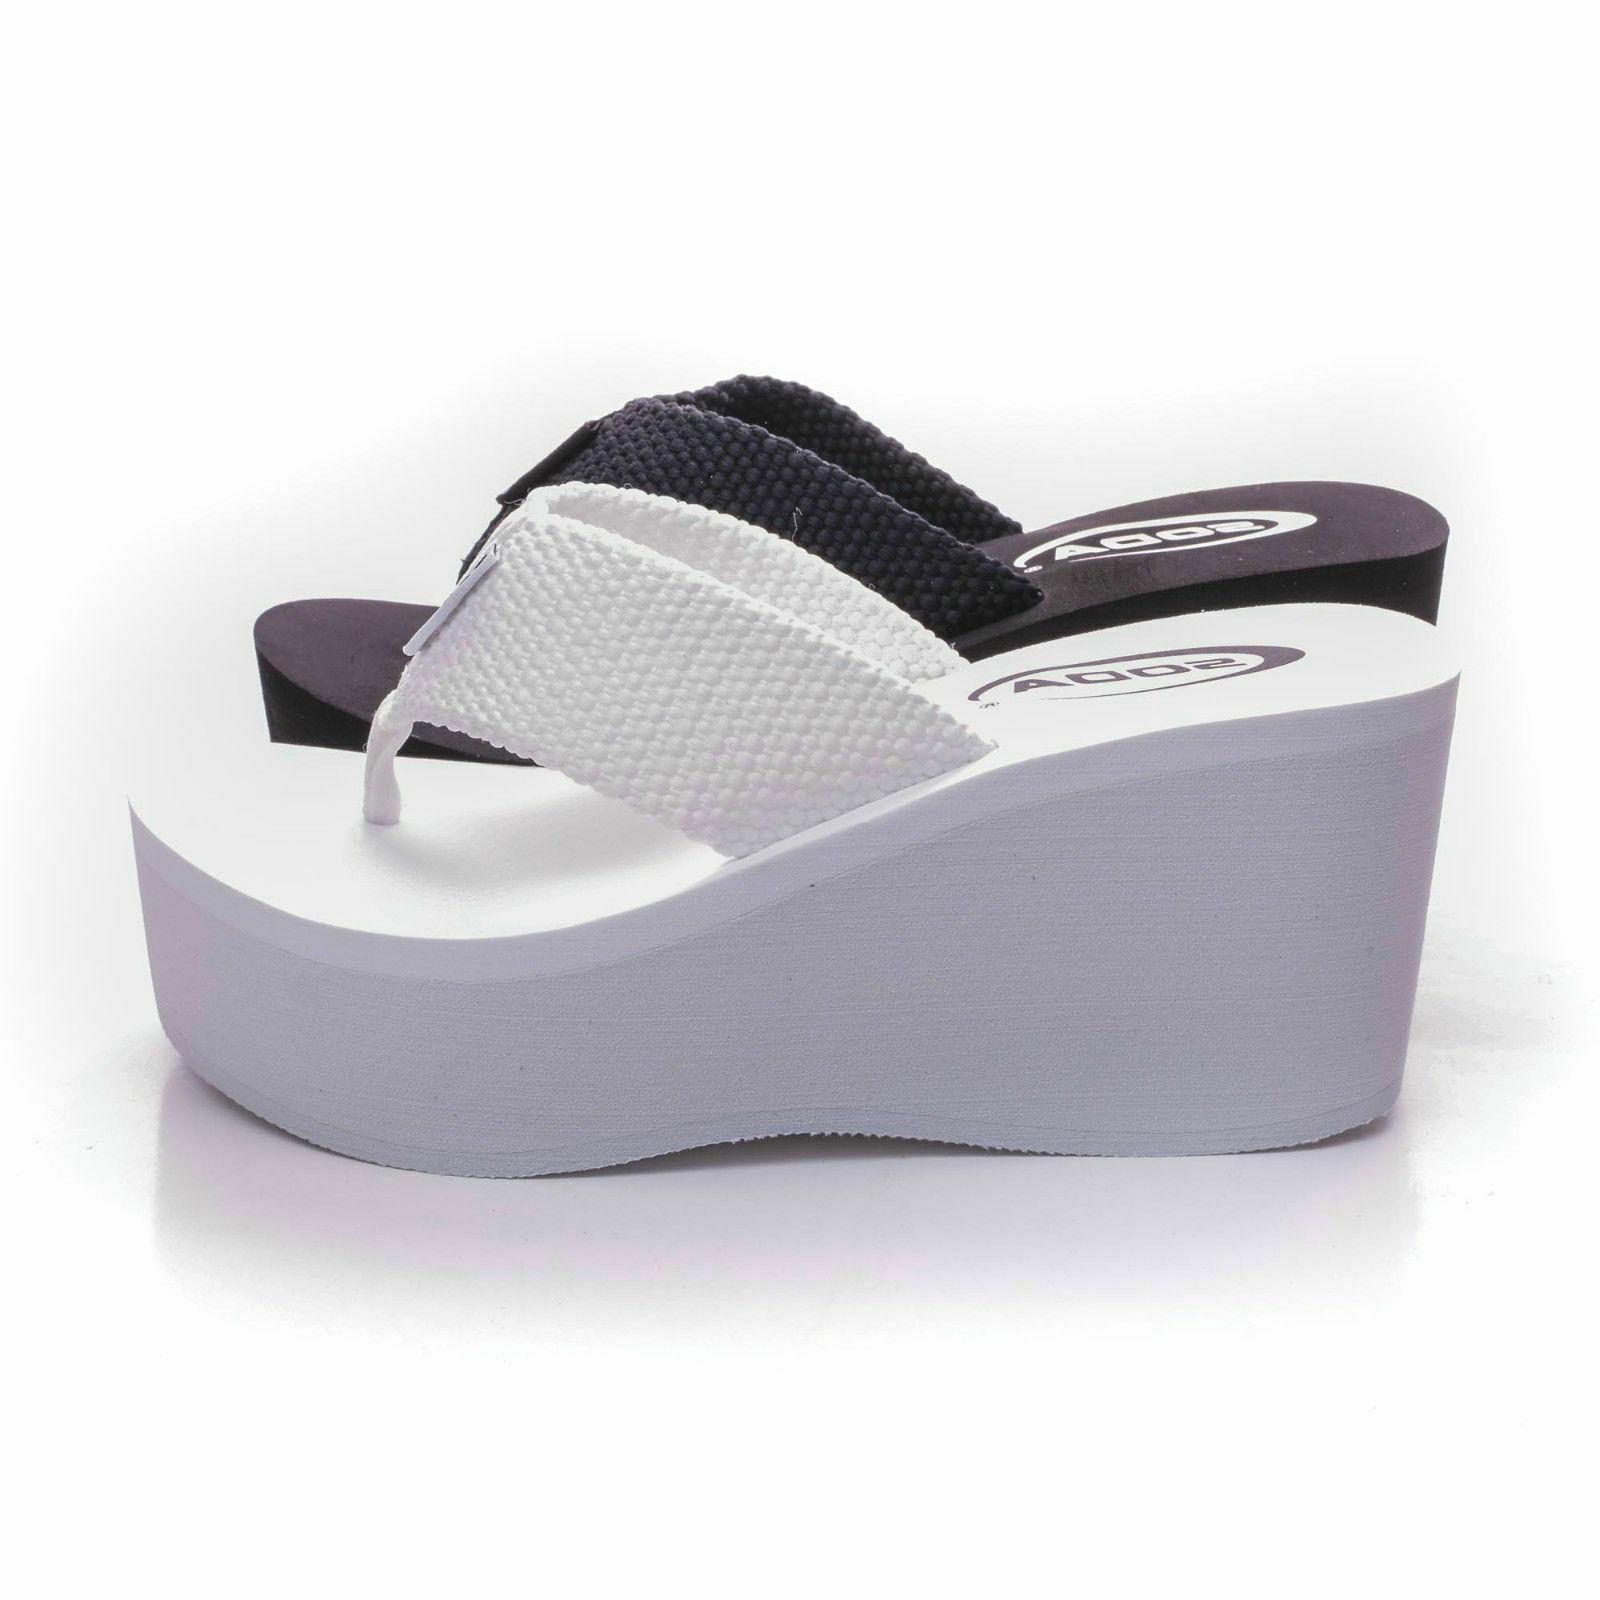 oxley s new womens sandals wedge shoes